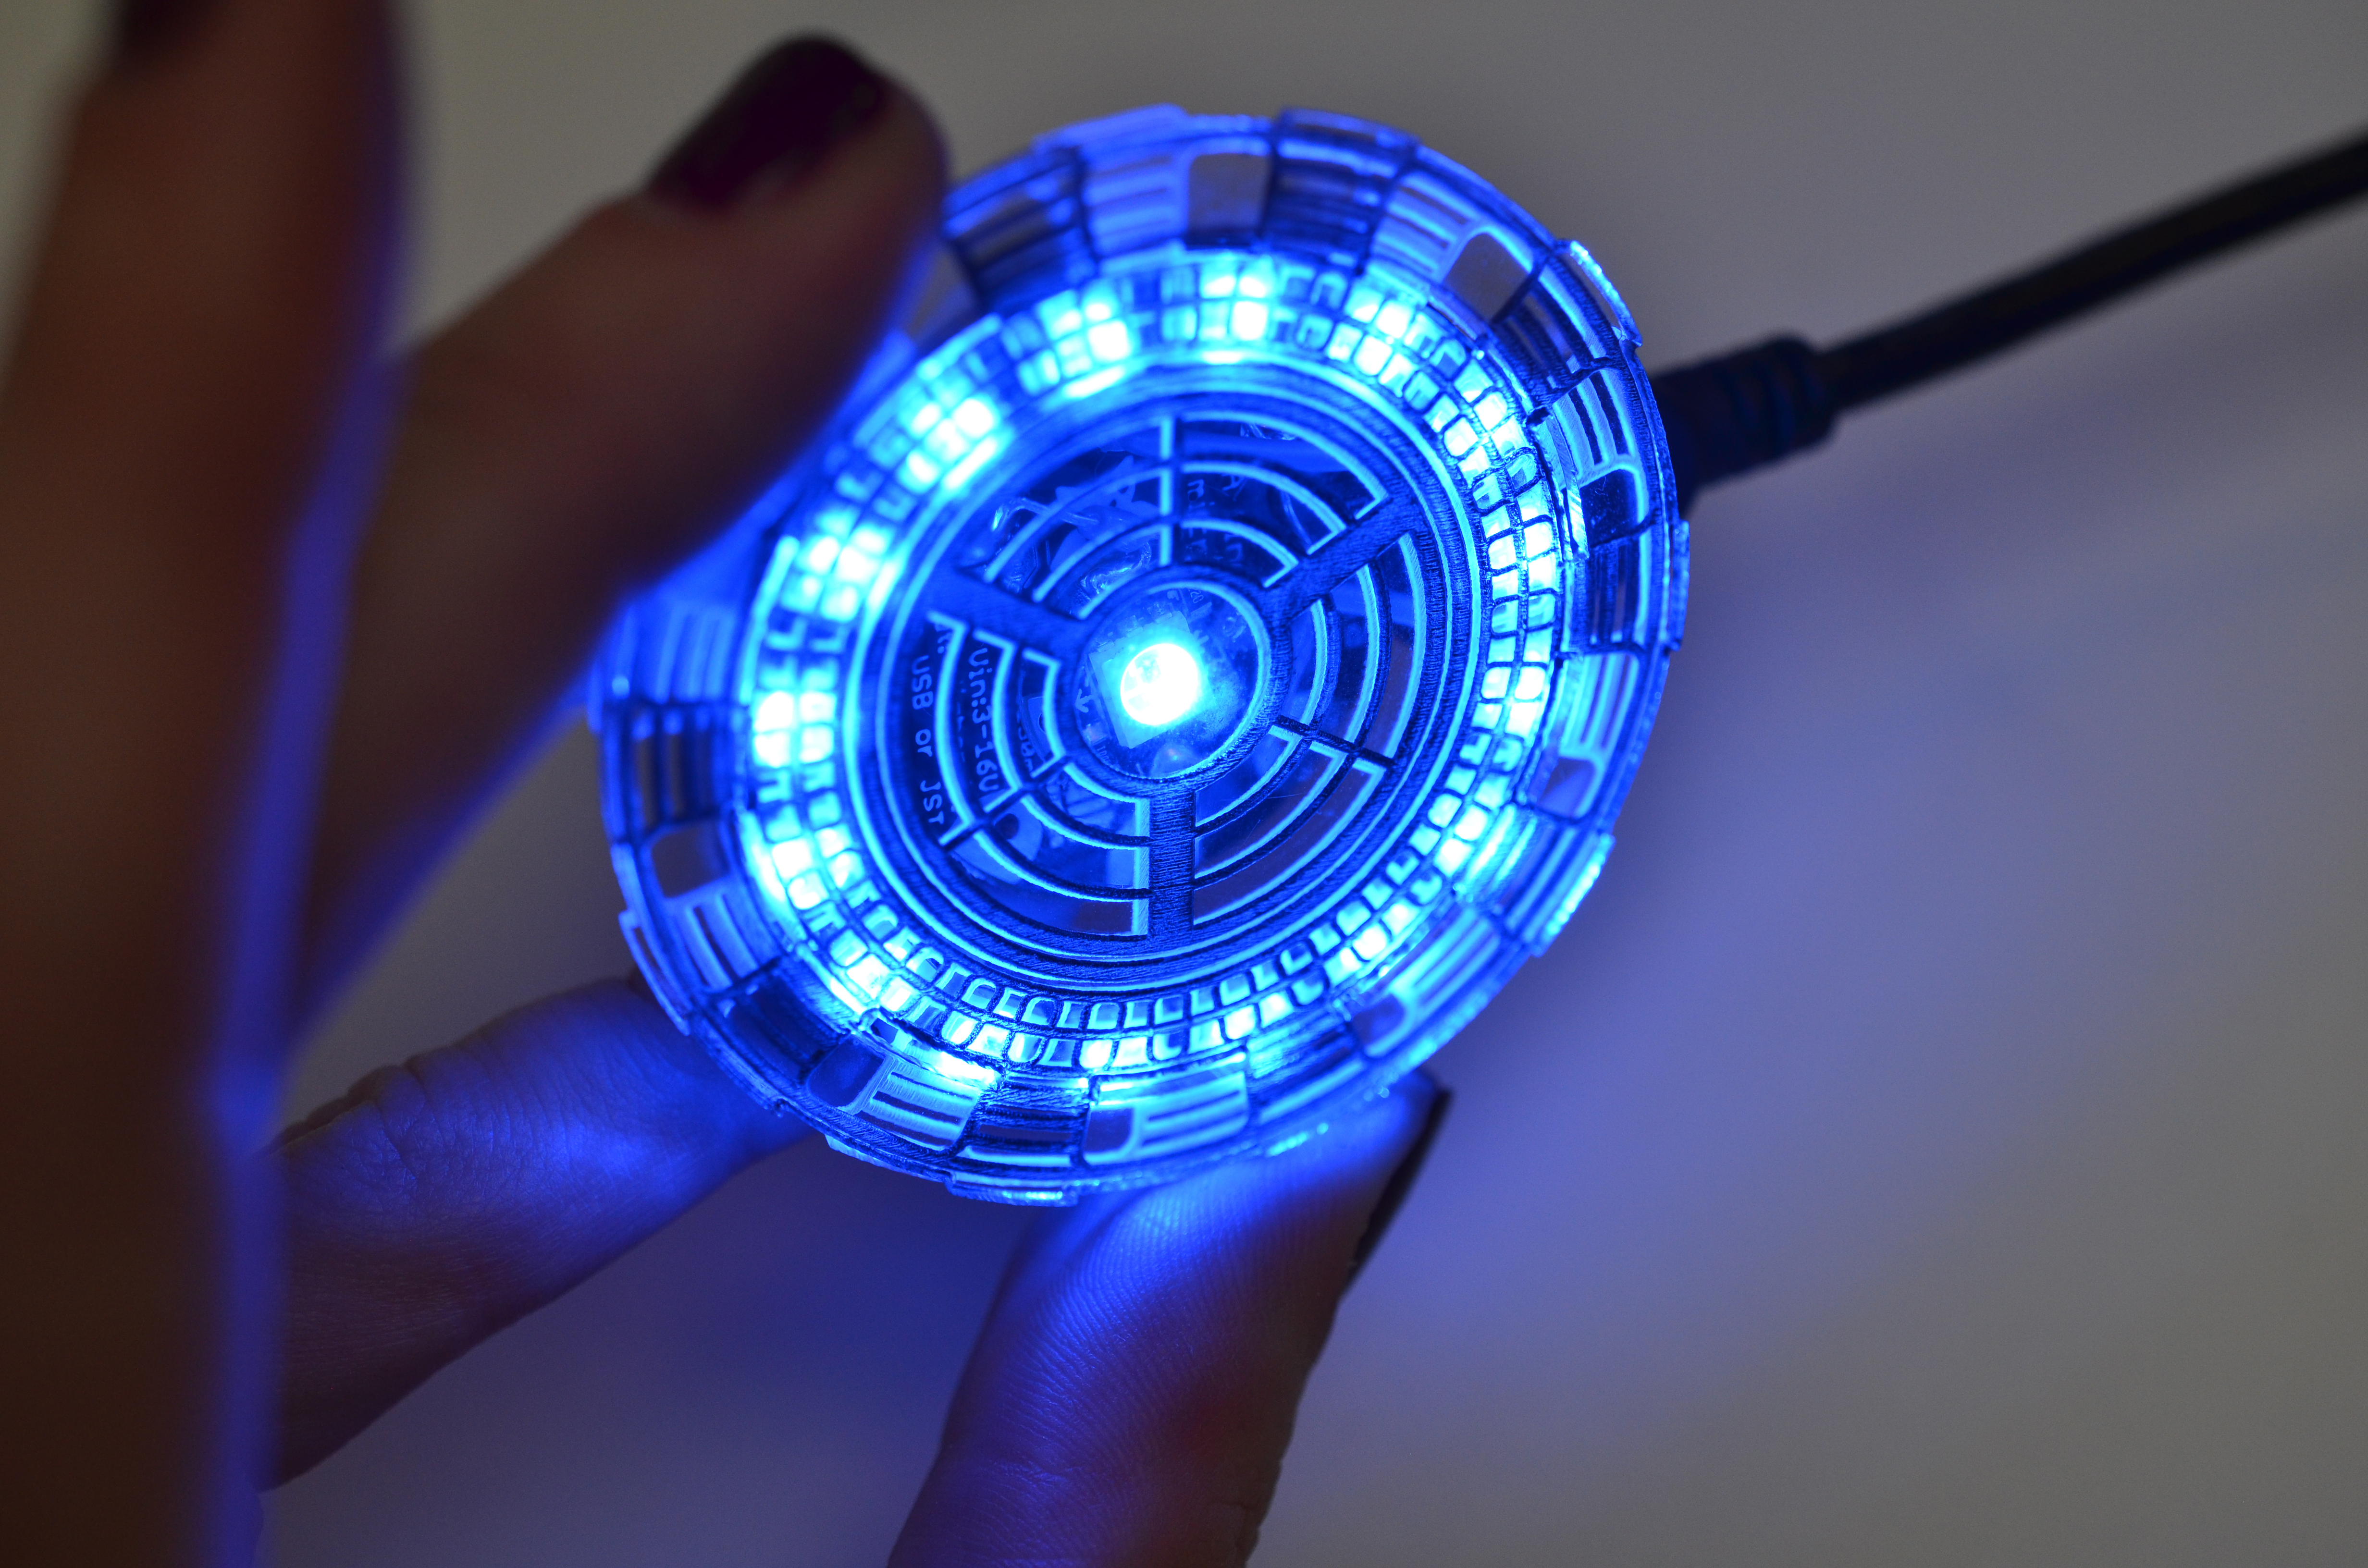 flora_iron-man-arc-reactor-adafruit-07.jpg